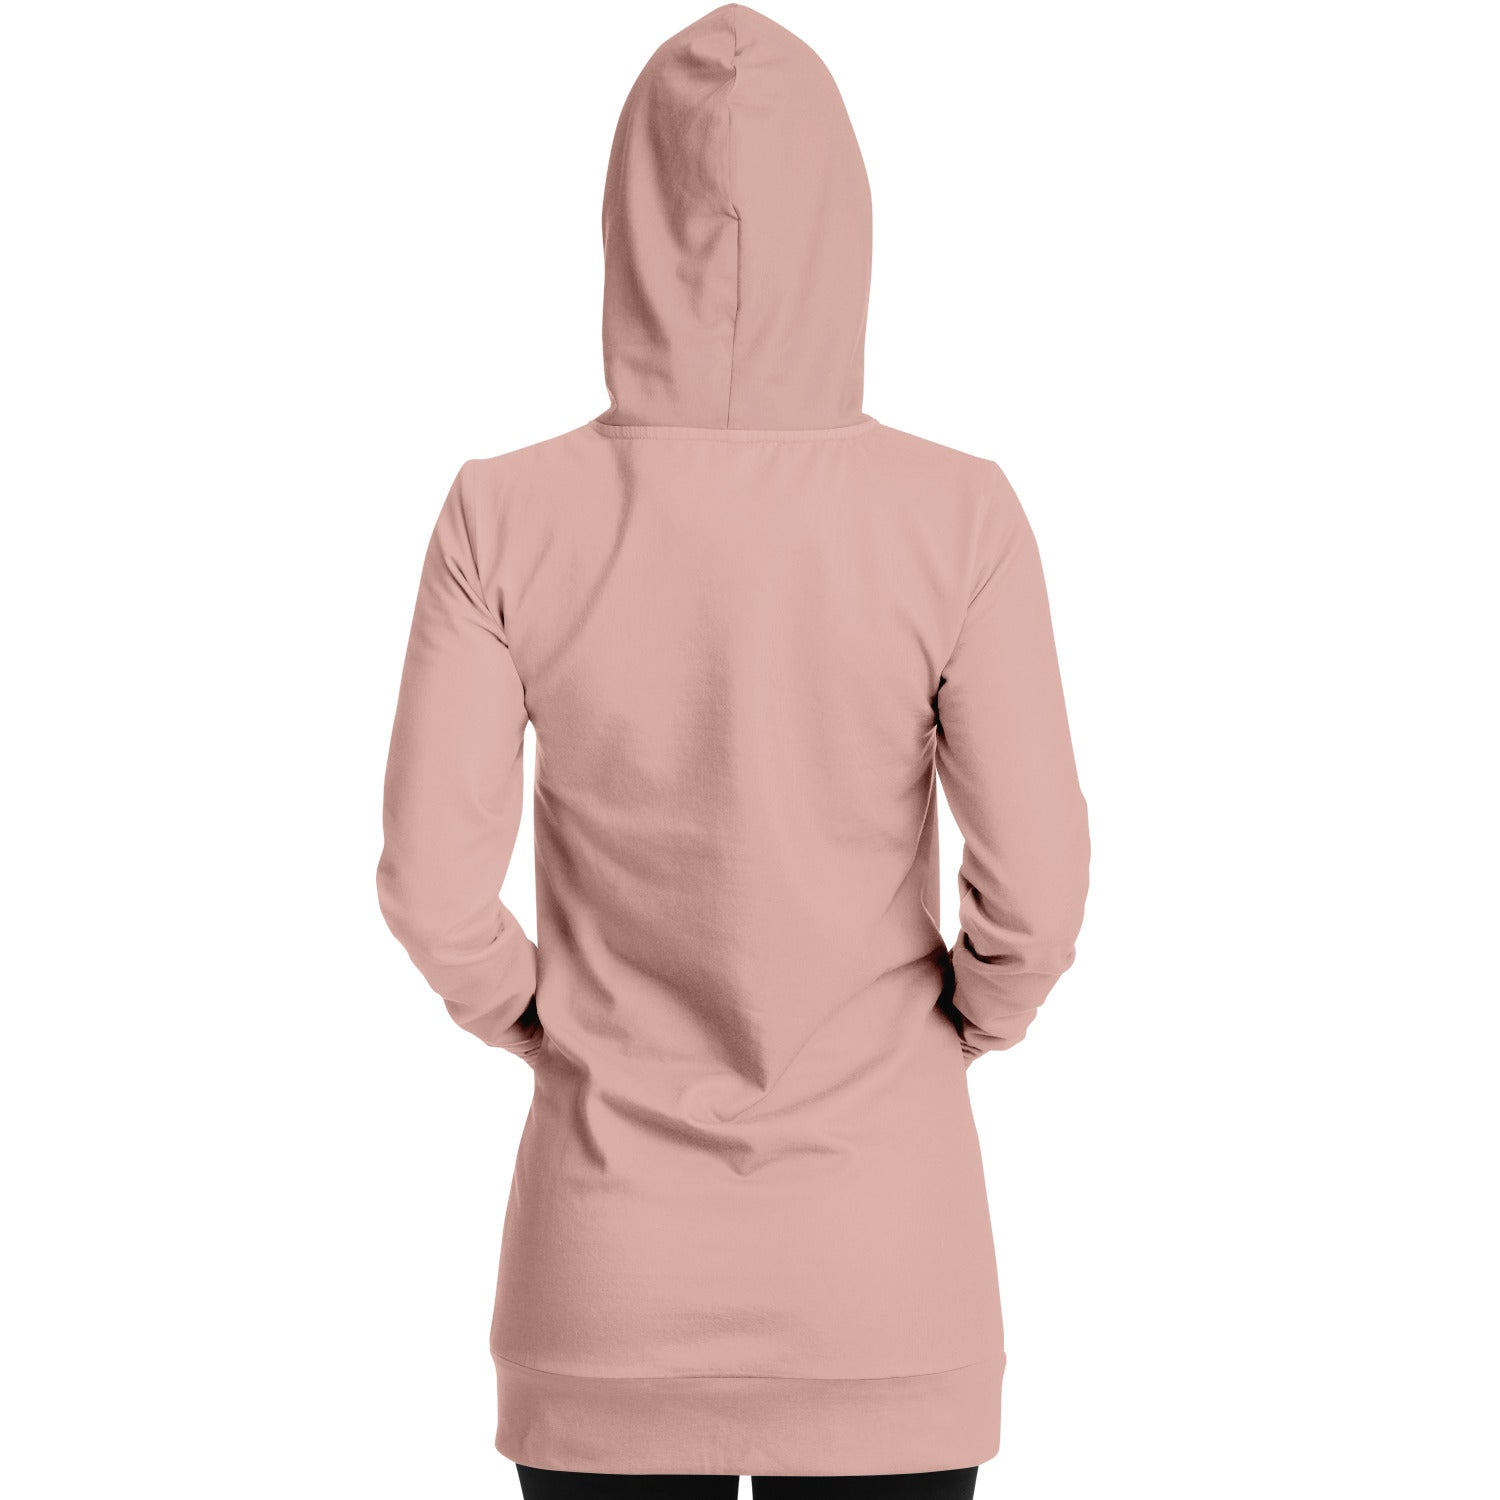 Coral Rose Senorita Hoodie Dress - S I S U M O I